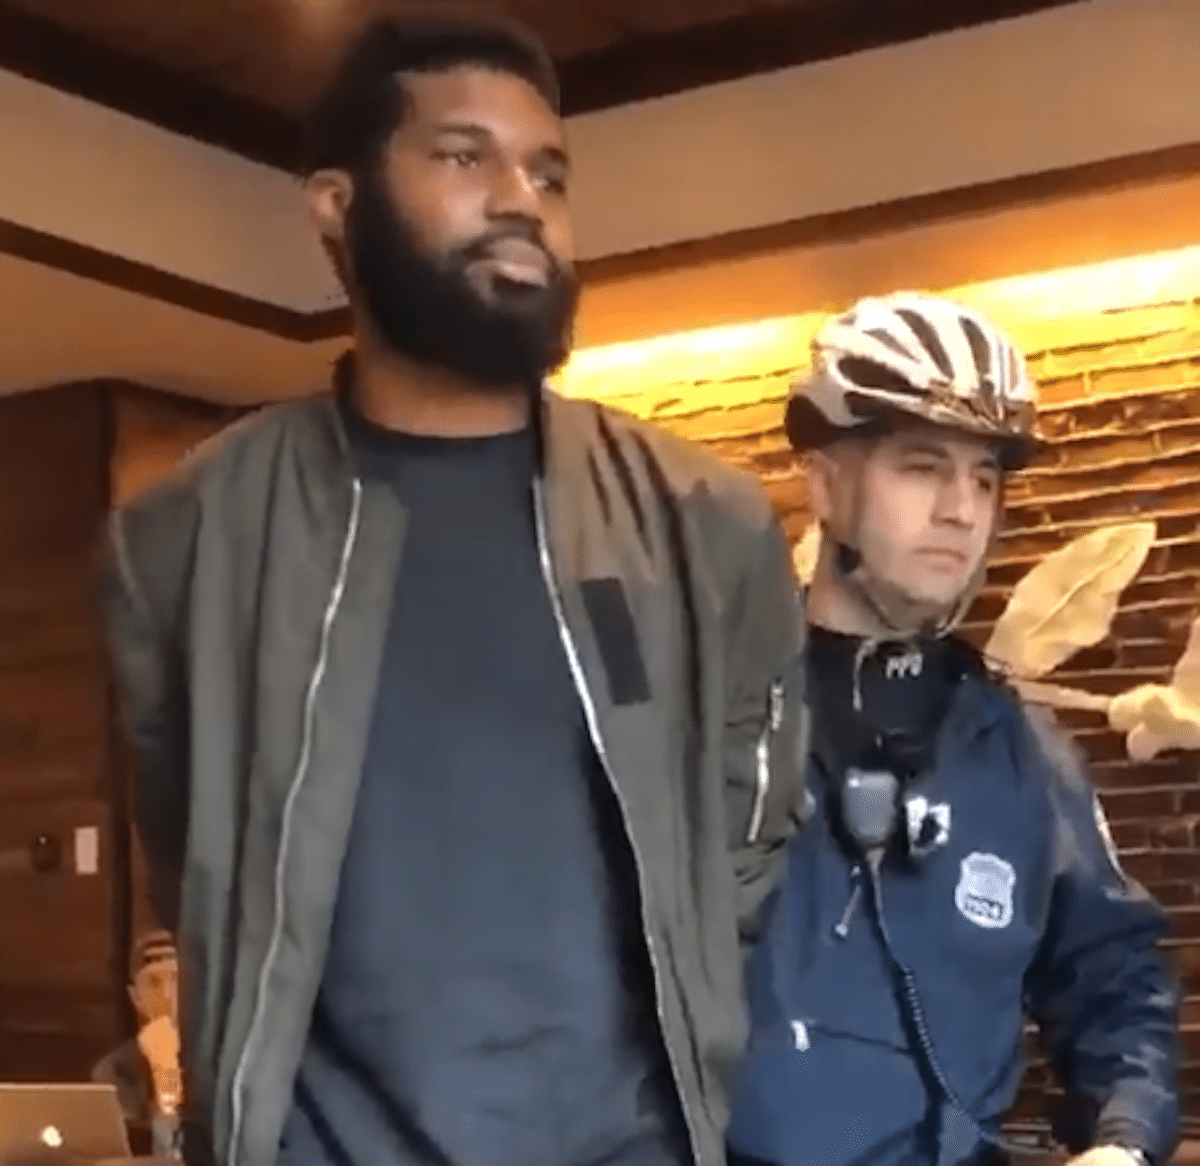 Starbucks Philadelphia store arrest two black men